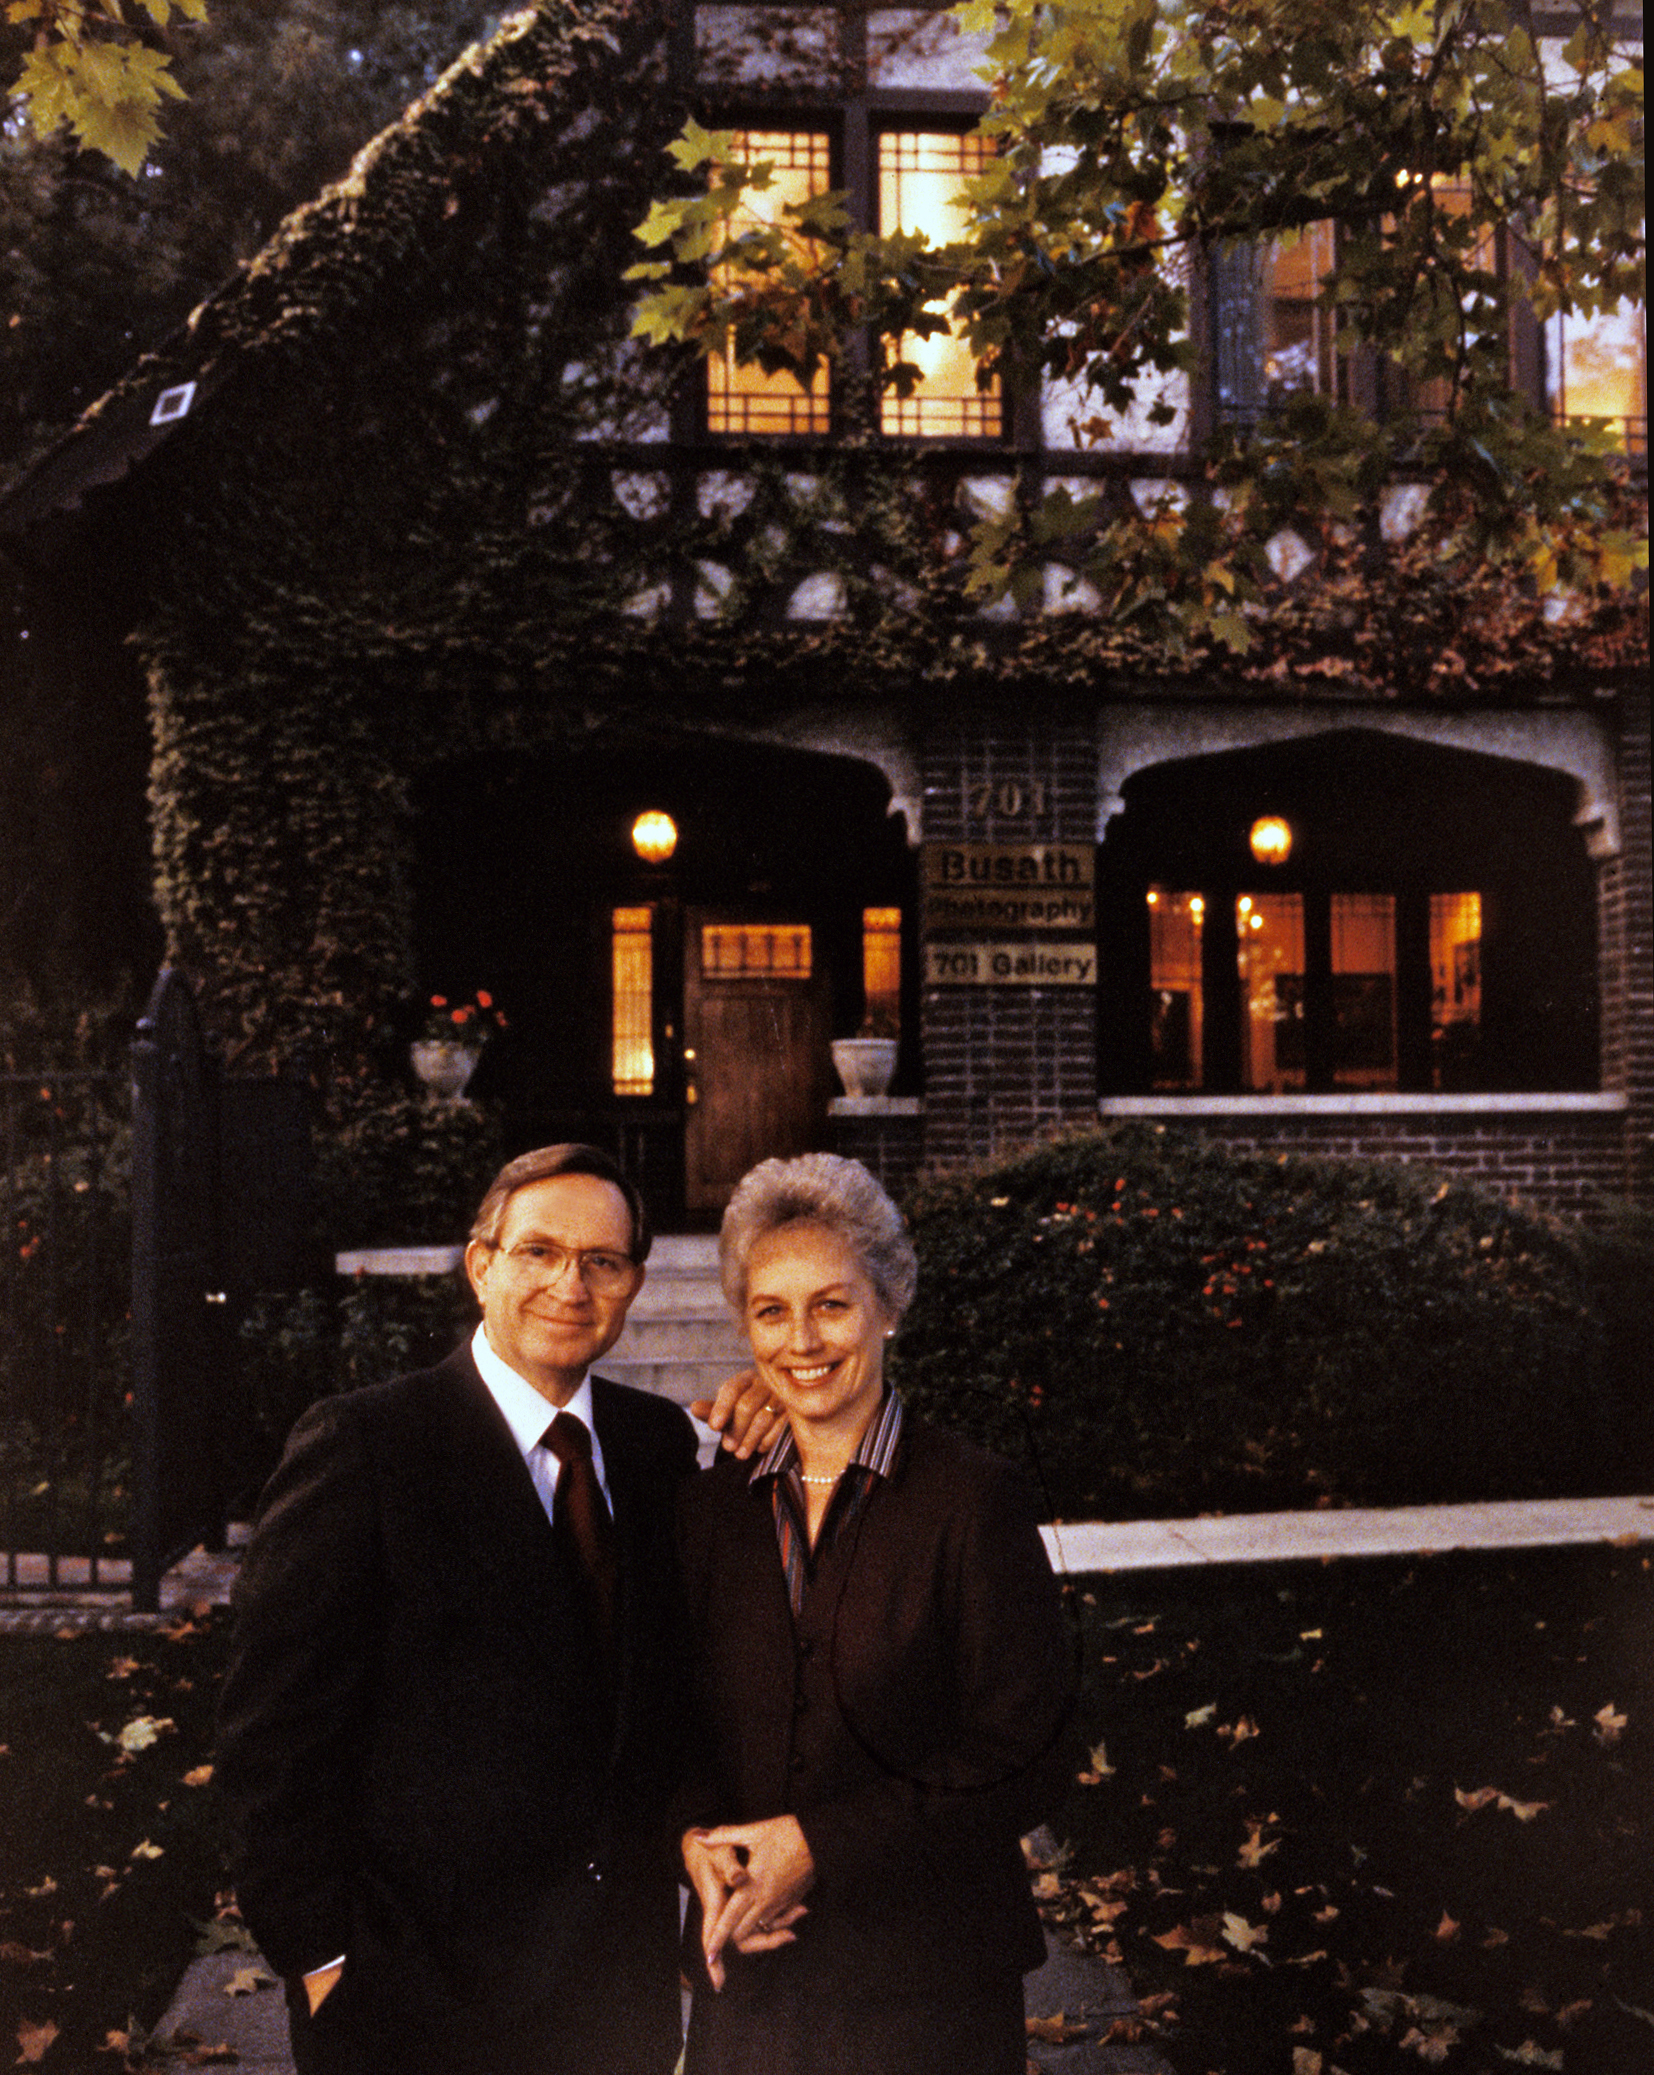 Don and Donna Busath outside their South Temple photo studio in Salt Lake City.